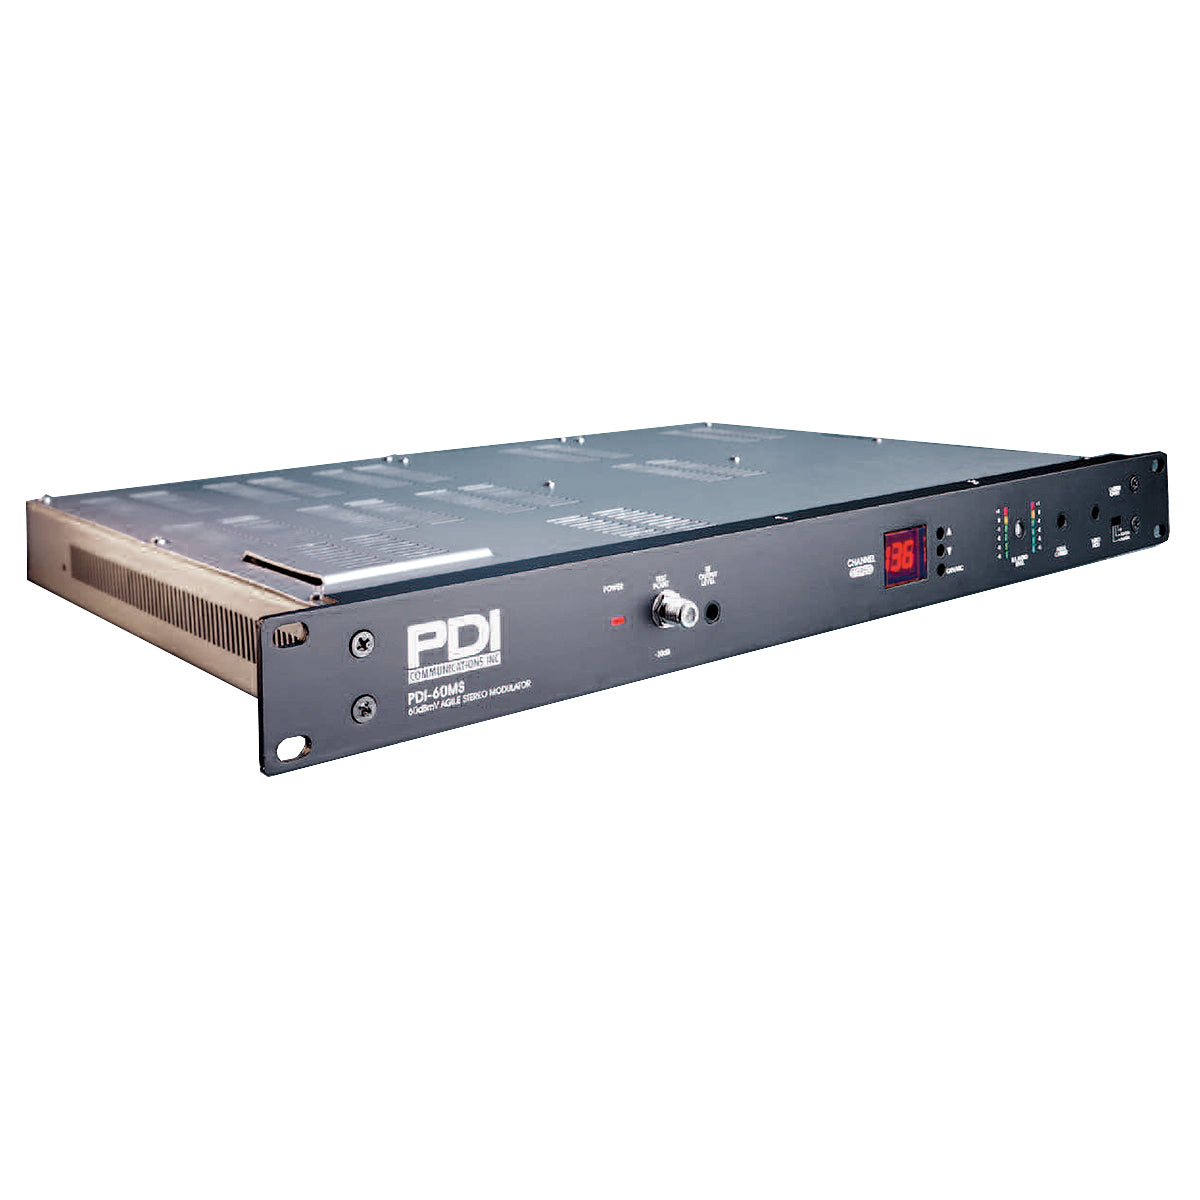 PDI-60MS 860MHz SAW Filtered Triple IF Loop Through Frequency Agile Stereo Modulator